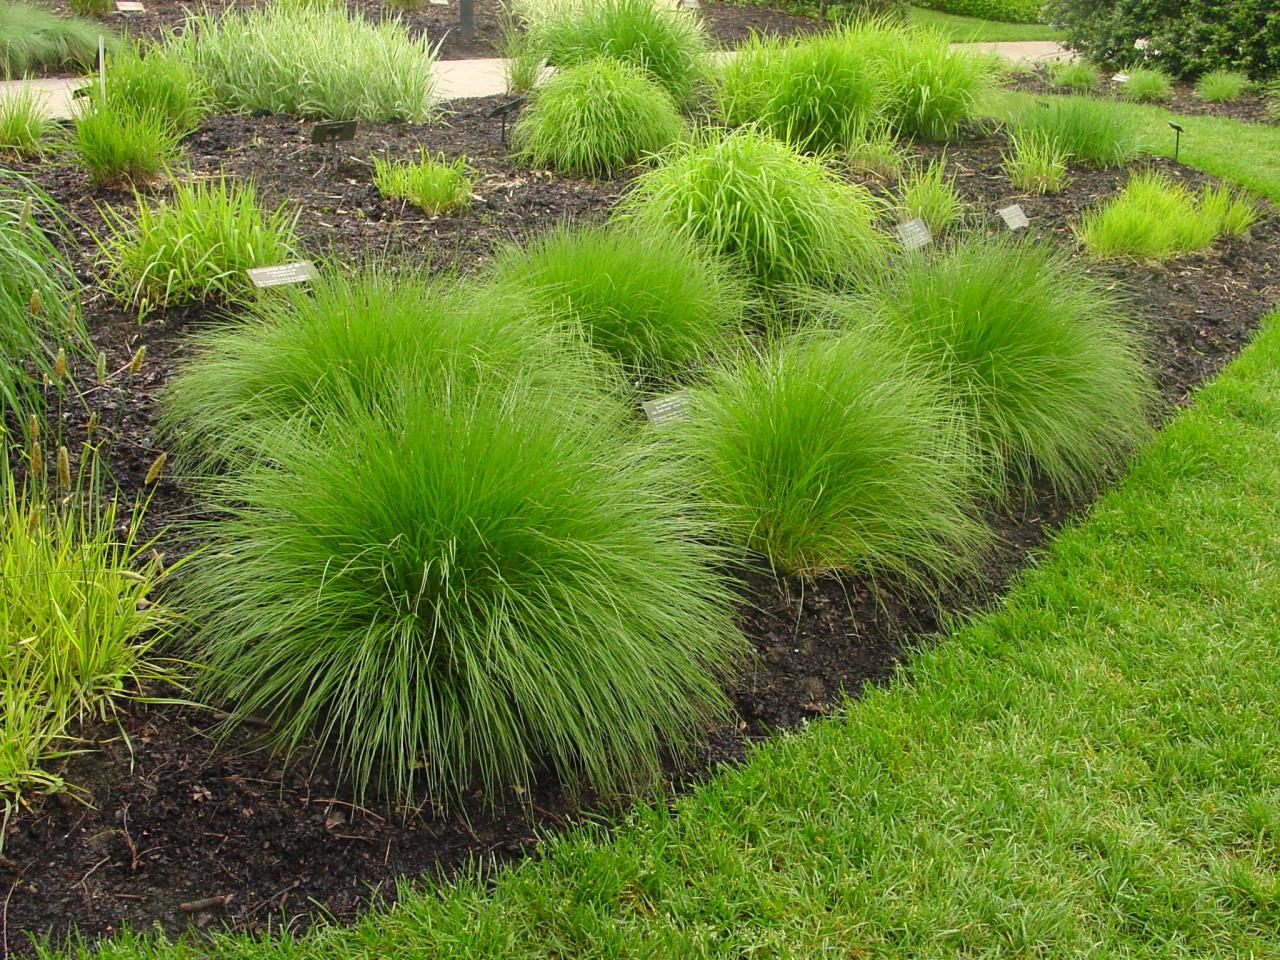 Types of ornamental grasses diy garden projects for Ornamental grass bed design